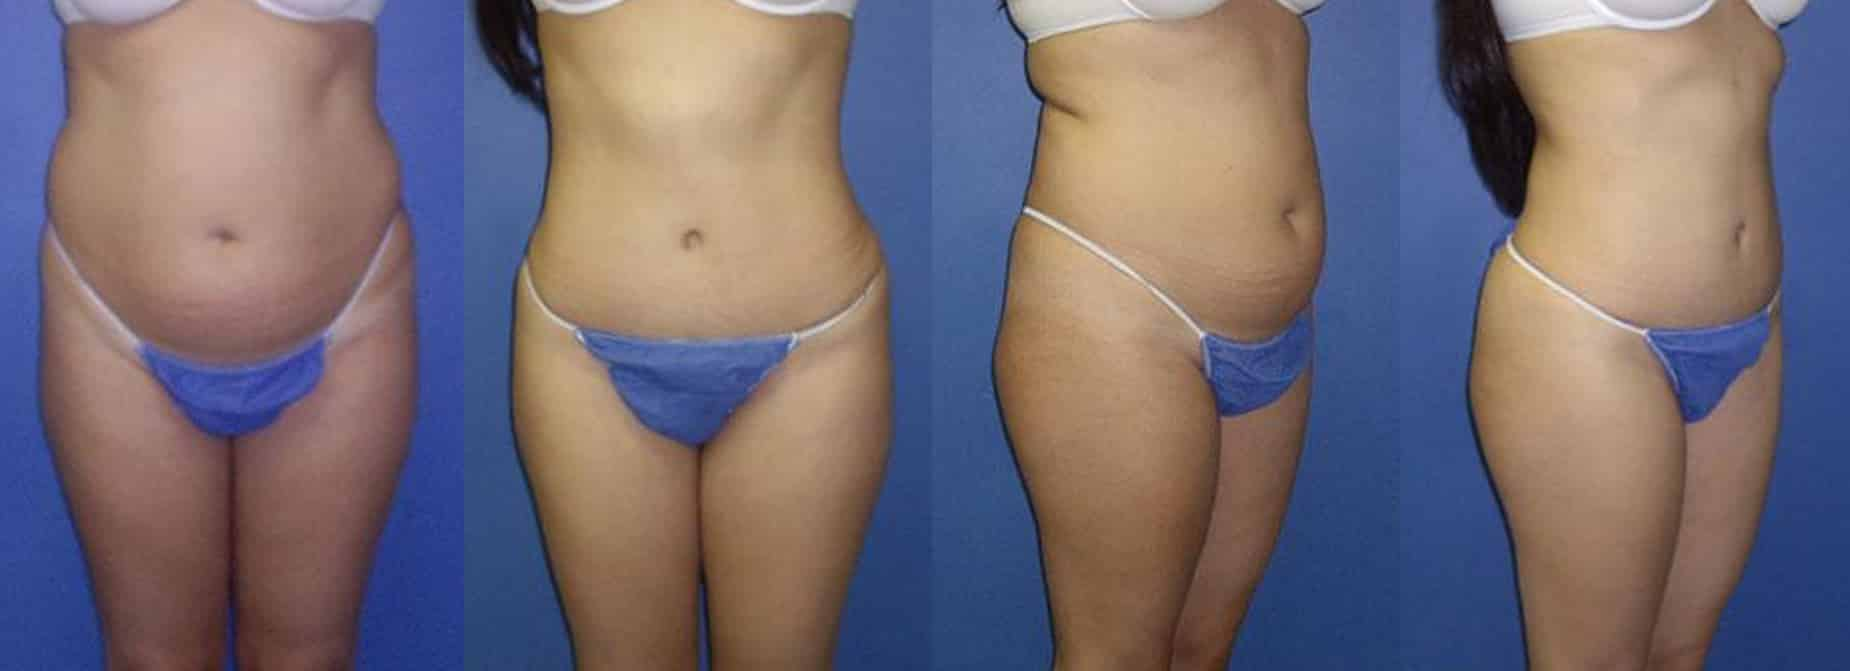 Images of a young female comparing her body before and after tummy tuck procedure. The belly fat is removed and the body is toned, New York, NY